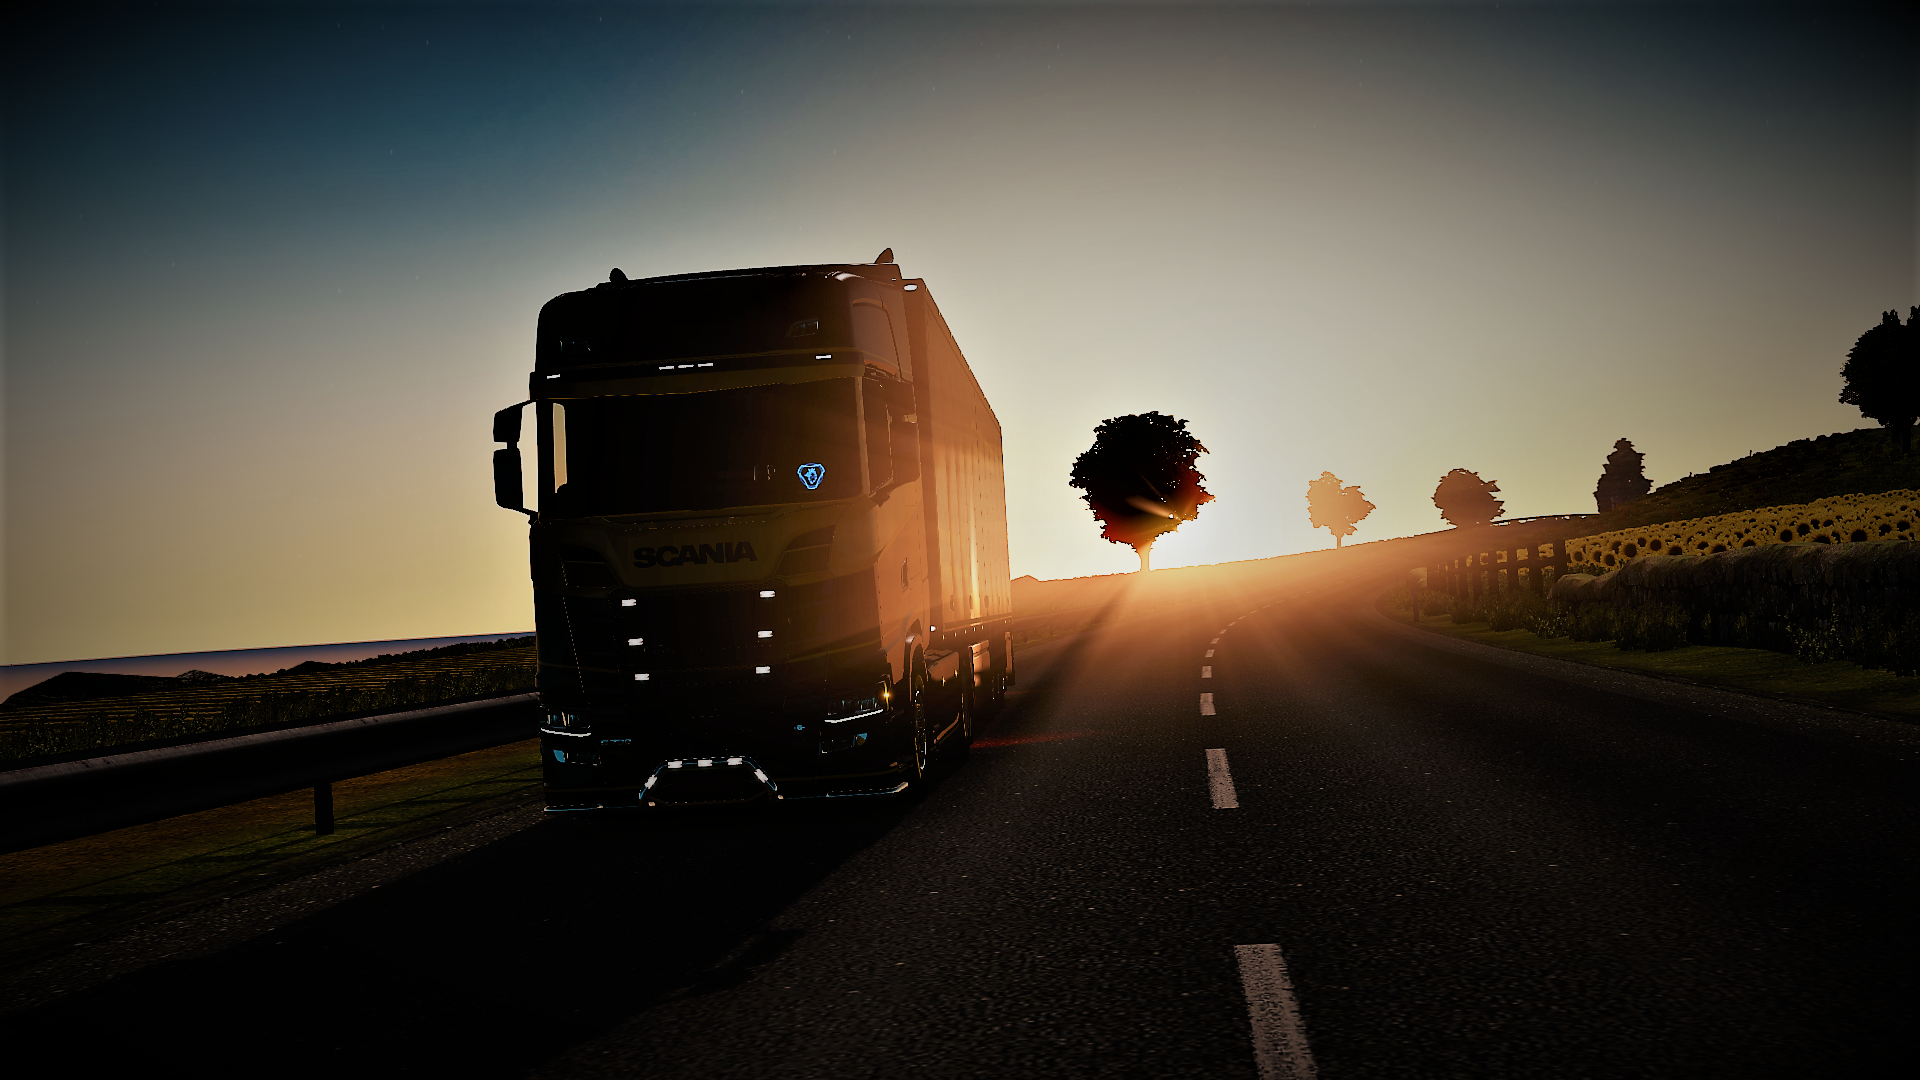 ets2_20190718_232644_00.png